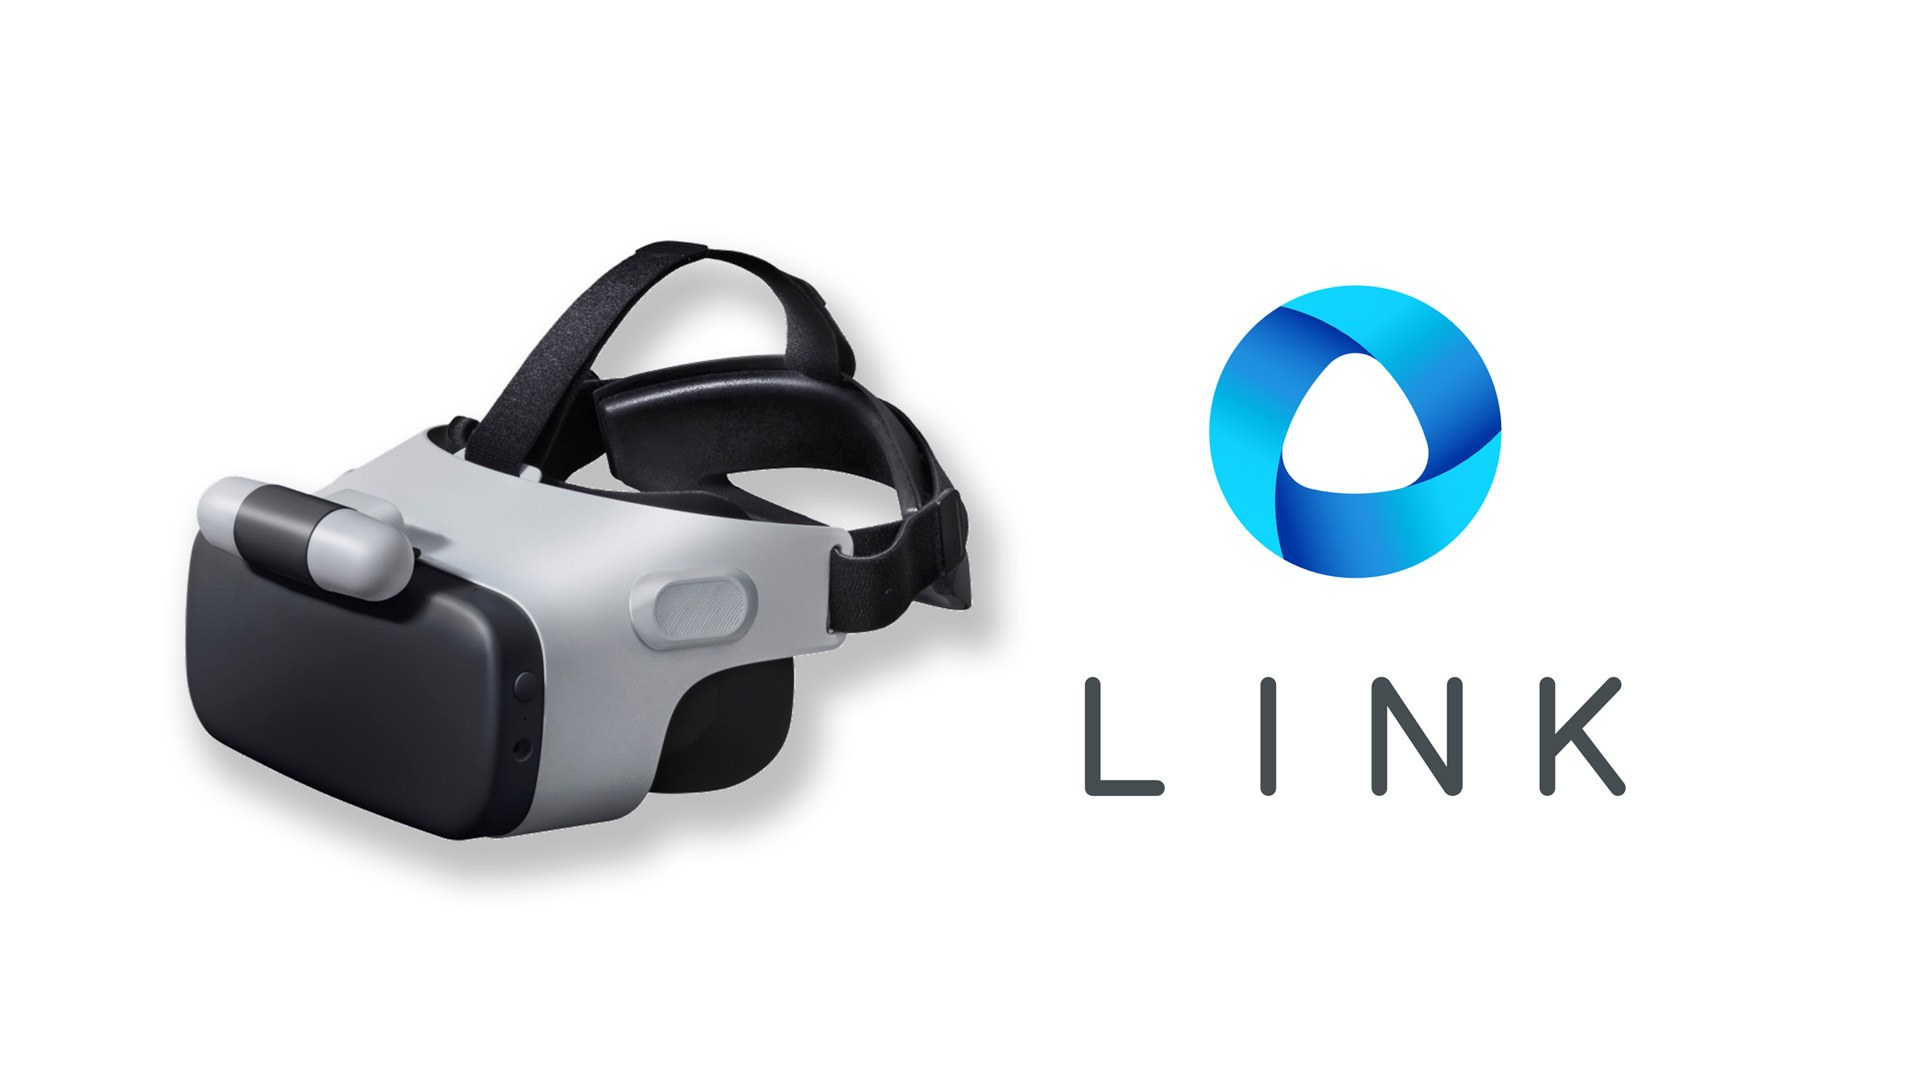 HTC's New 'Link' Mobile VR Headset Comes with 6 DoF htc blog vr blog virtual reality